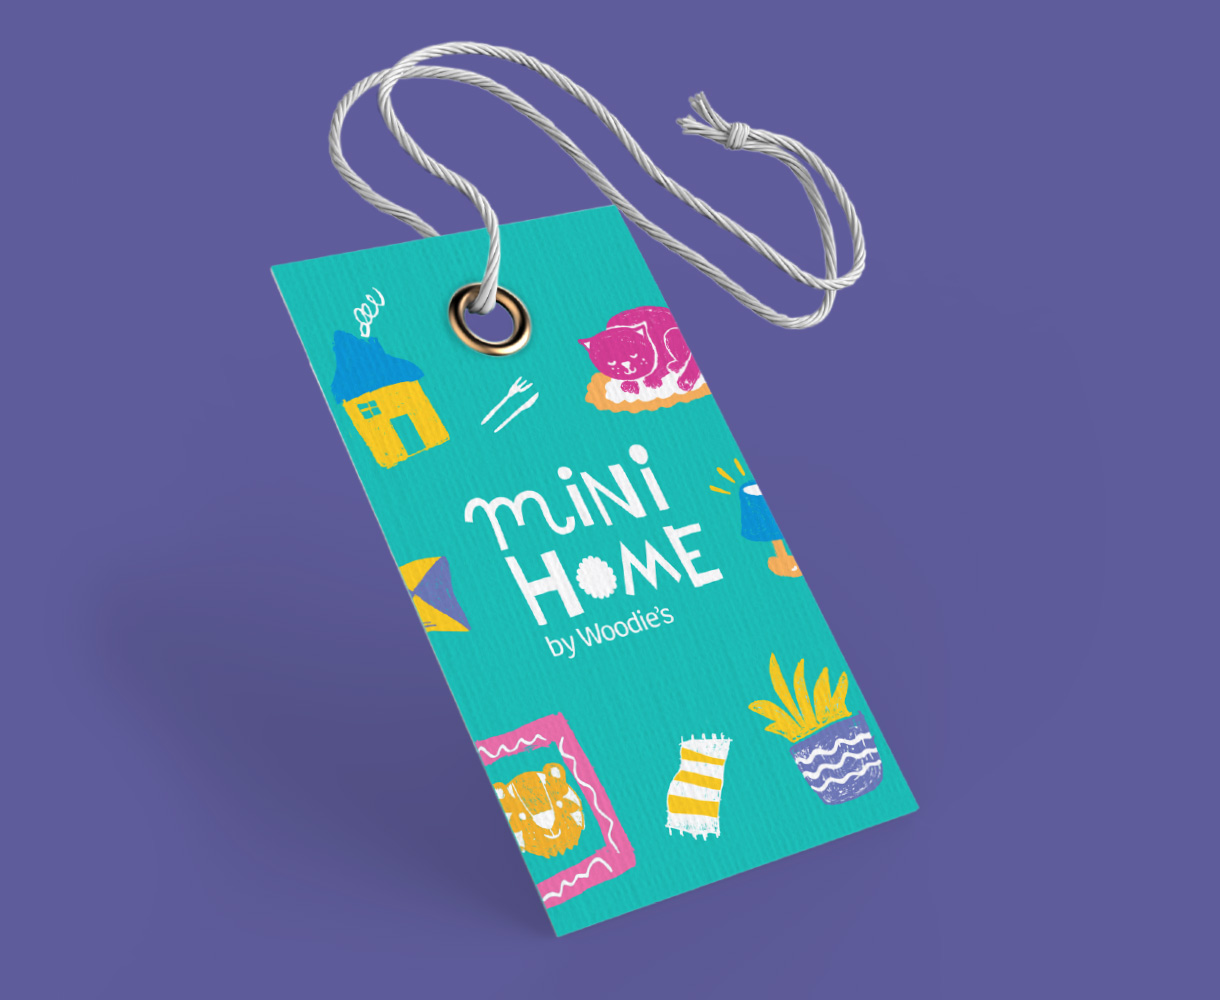 Principle Brand Design Dublin, Mini Home by Woodie's, Packaging Swing Tag, Children's Homeware Range Branding